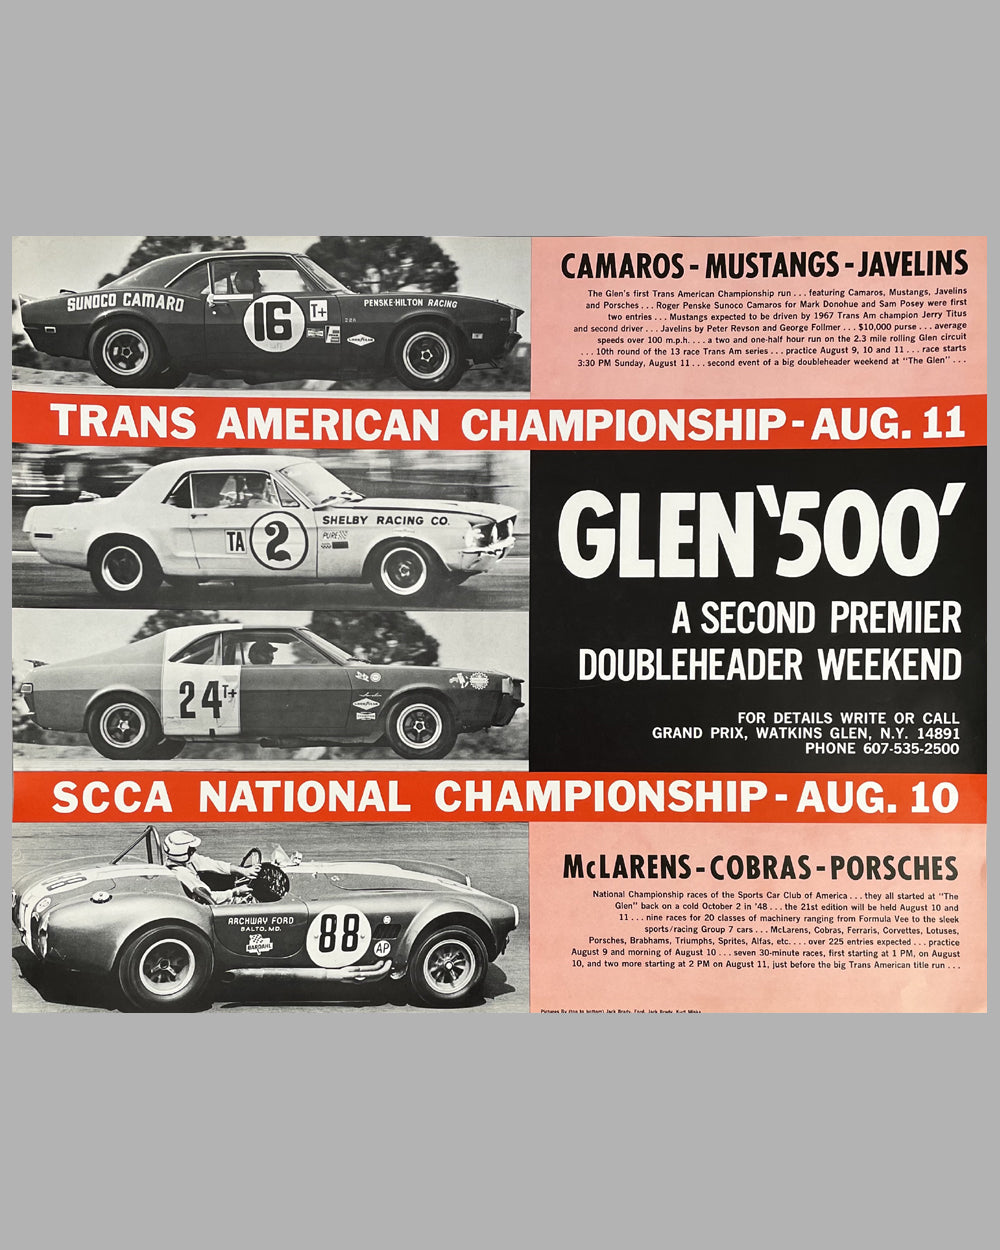 Glen 500 1968 original poster for the Trans Am Championship & SCCA National Championship